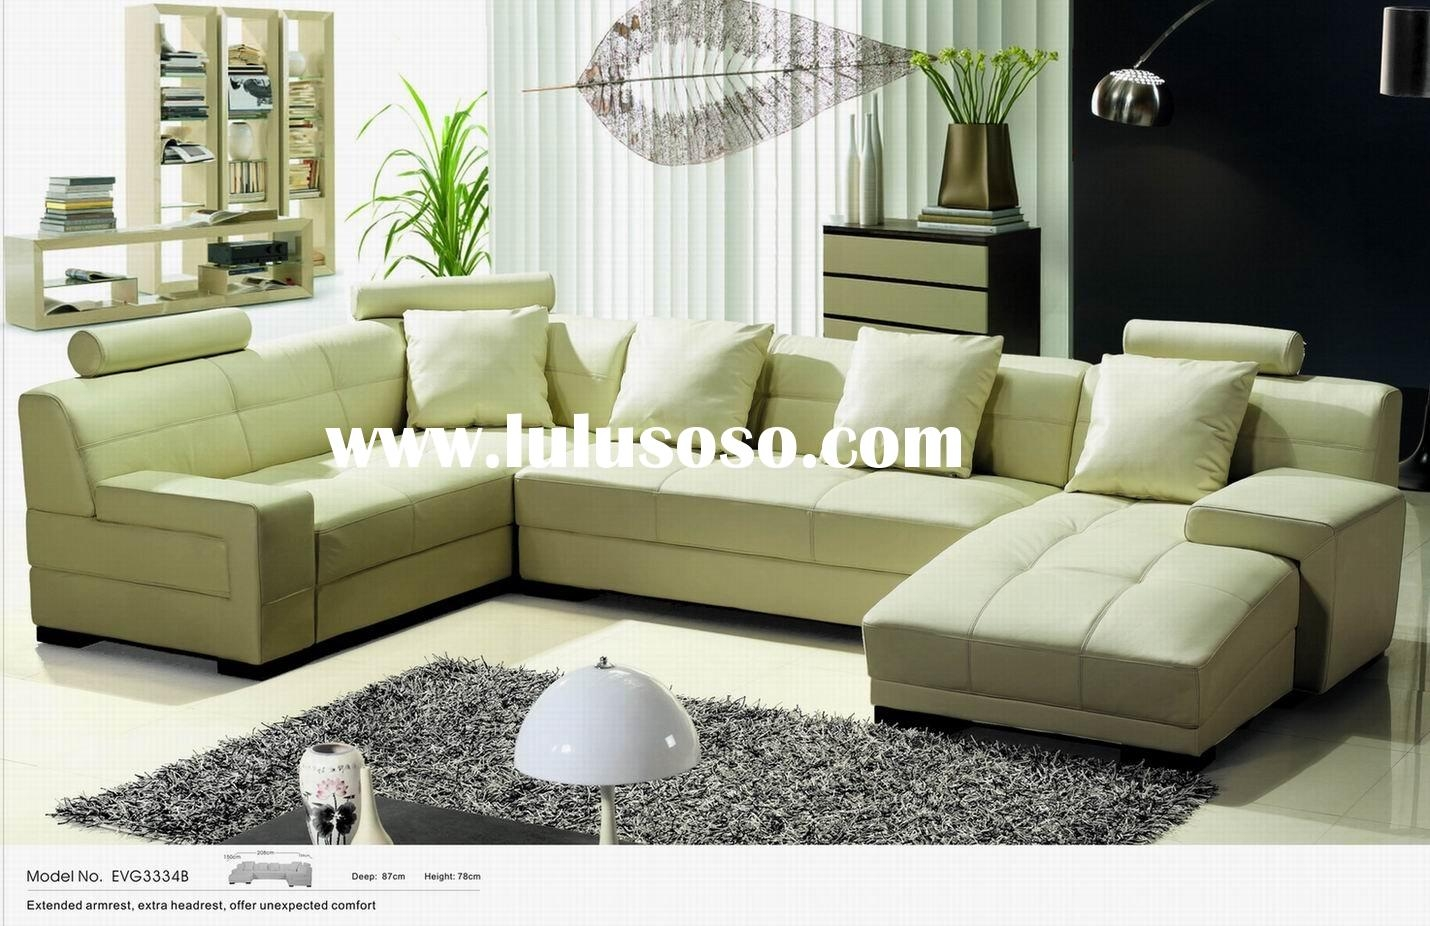 Sofas Center Living Room Great Sofa Chairs For And With Regard Inside Living Room Sofas And Chairs (Image 14 of 15)